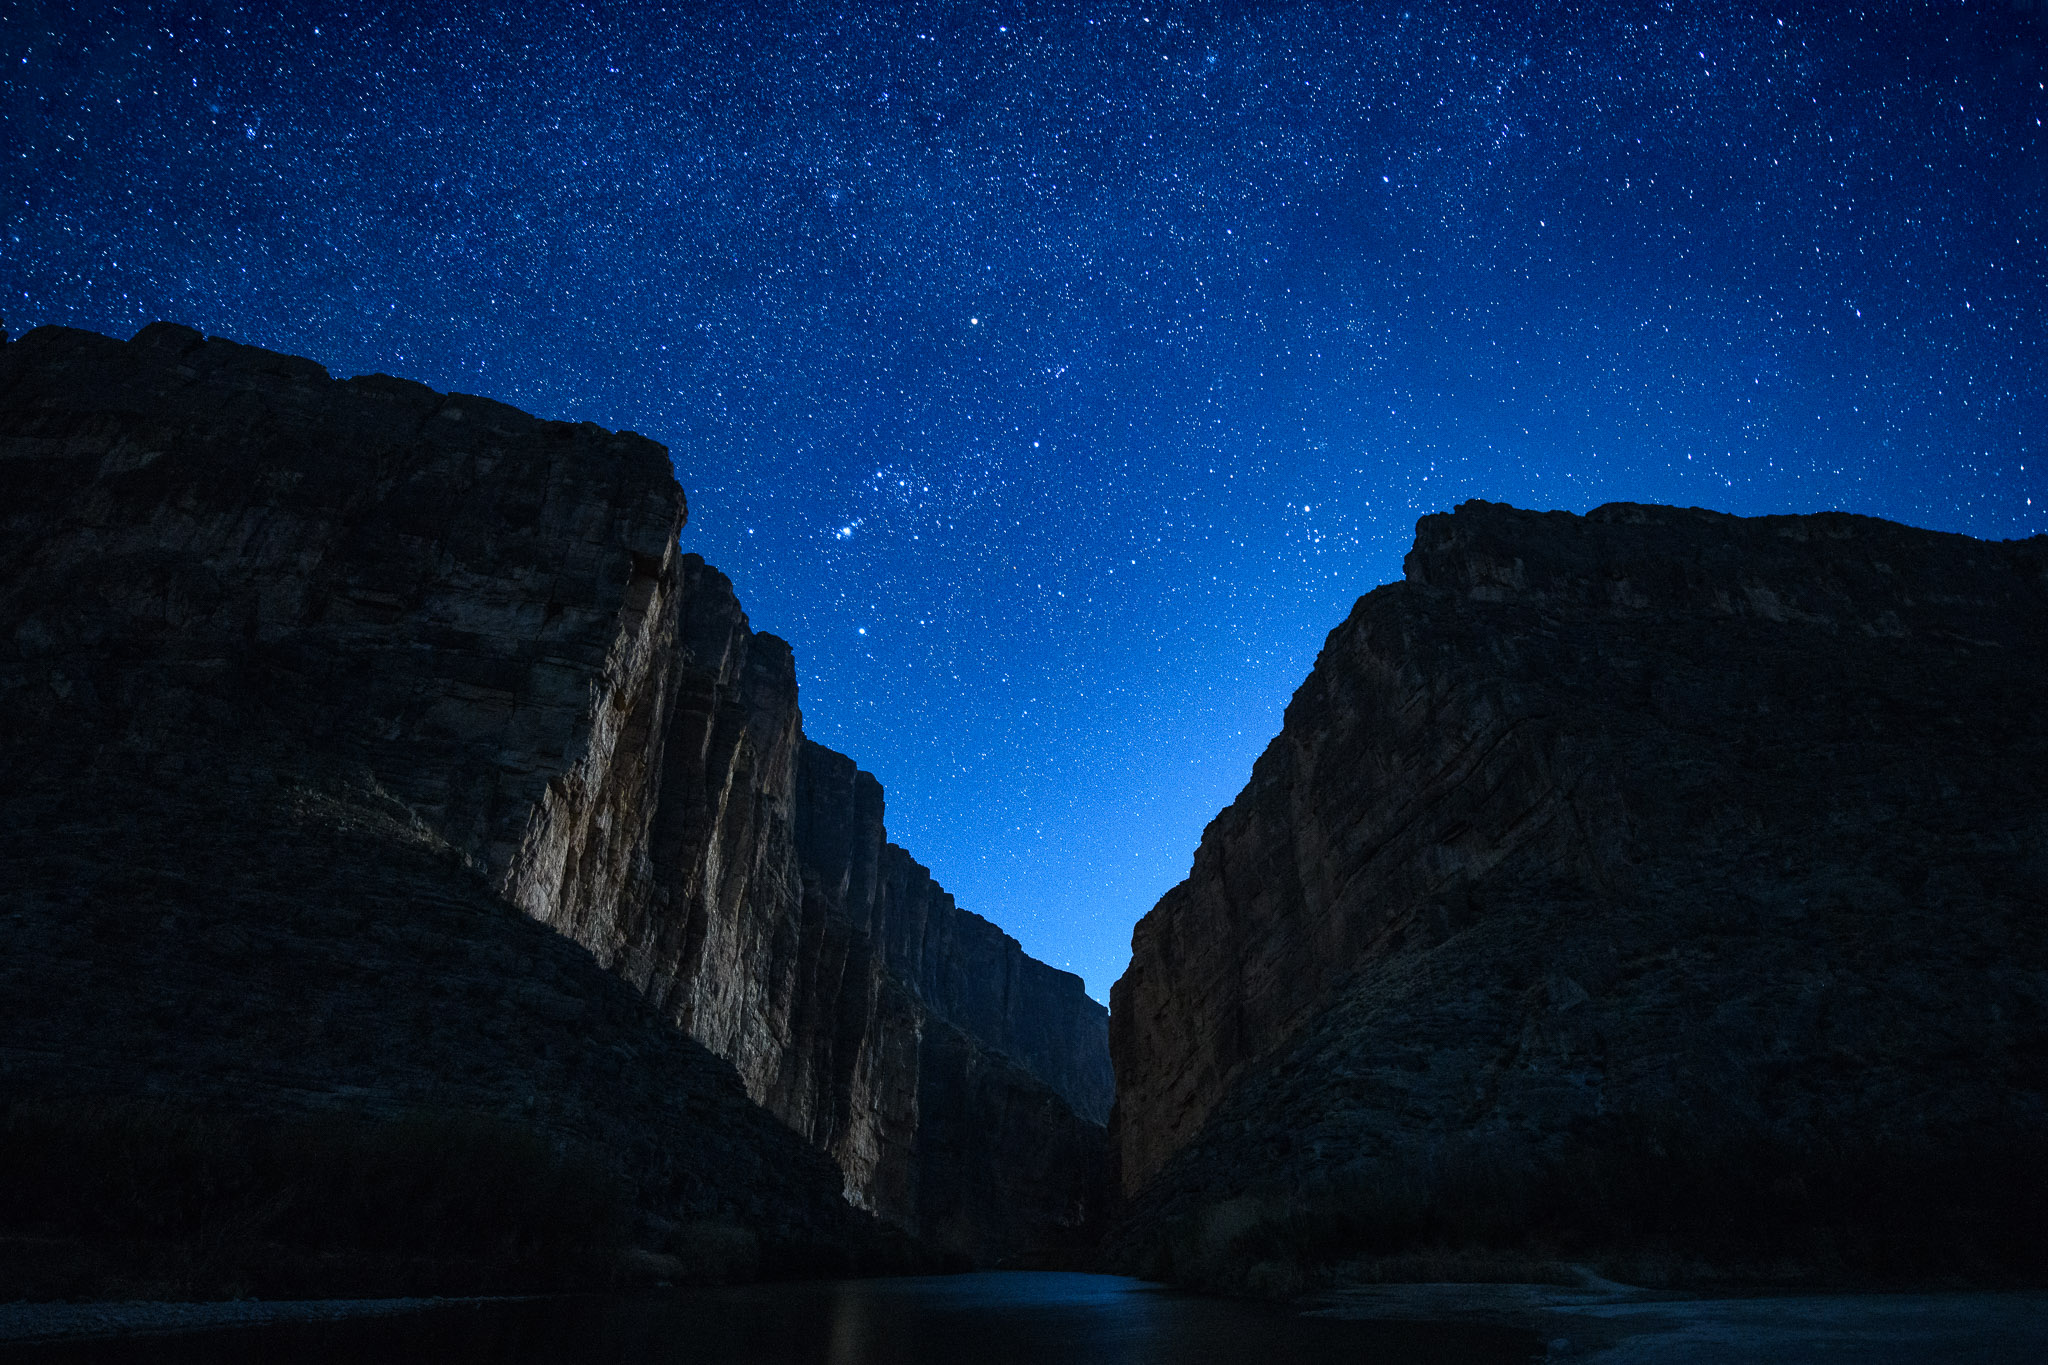 Moonlight in Santa Elena Canyon, Big Bend National Park.  Nikon D850 , Nikon 14-24mm f/2.8 lens at 17mm. 20 seconds, f/2.8, ISO 5000.